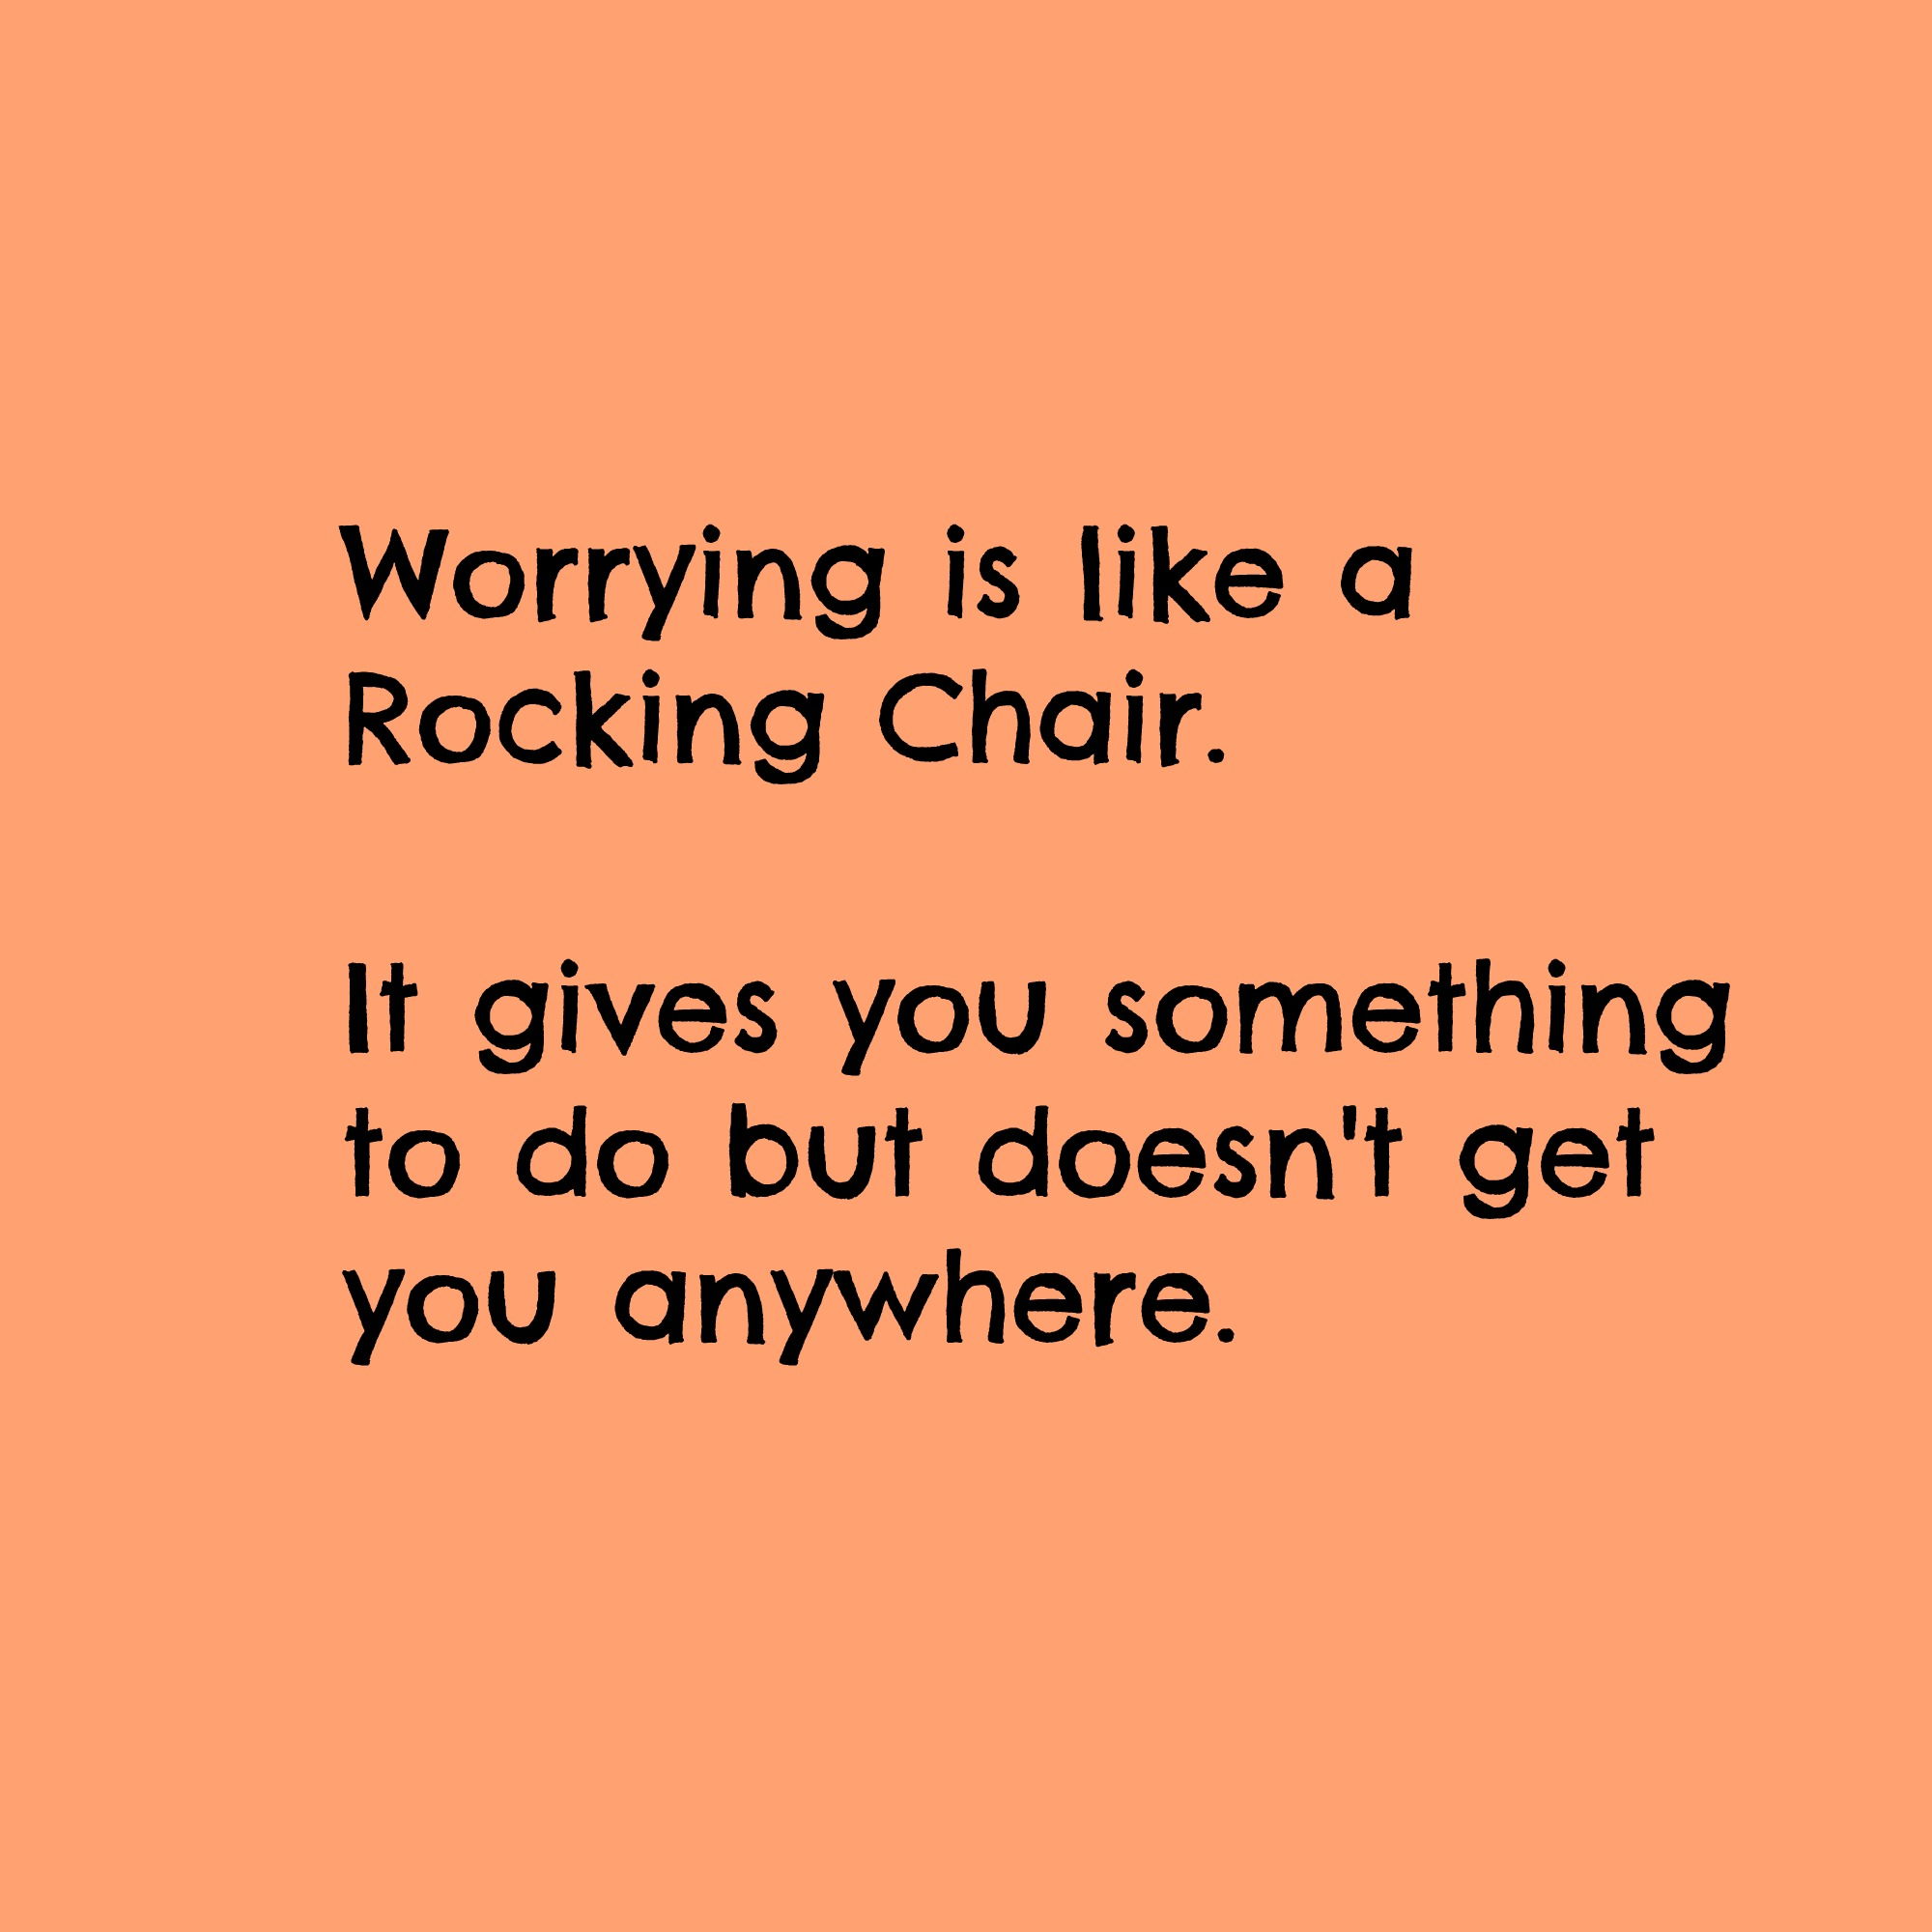 Ways to Stop Worrying - Where Does Worry Get You?